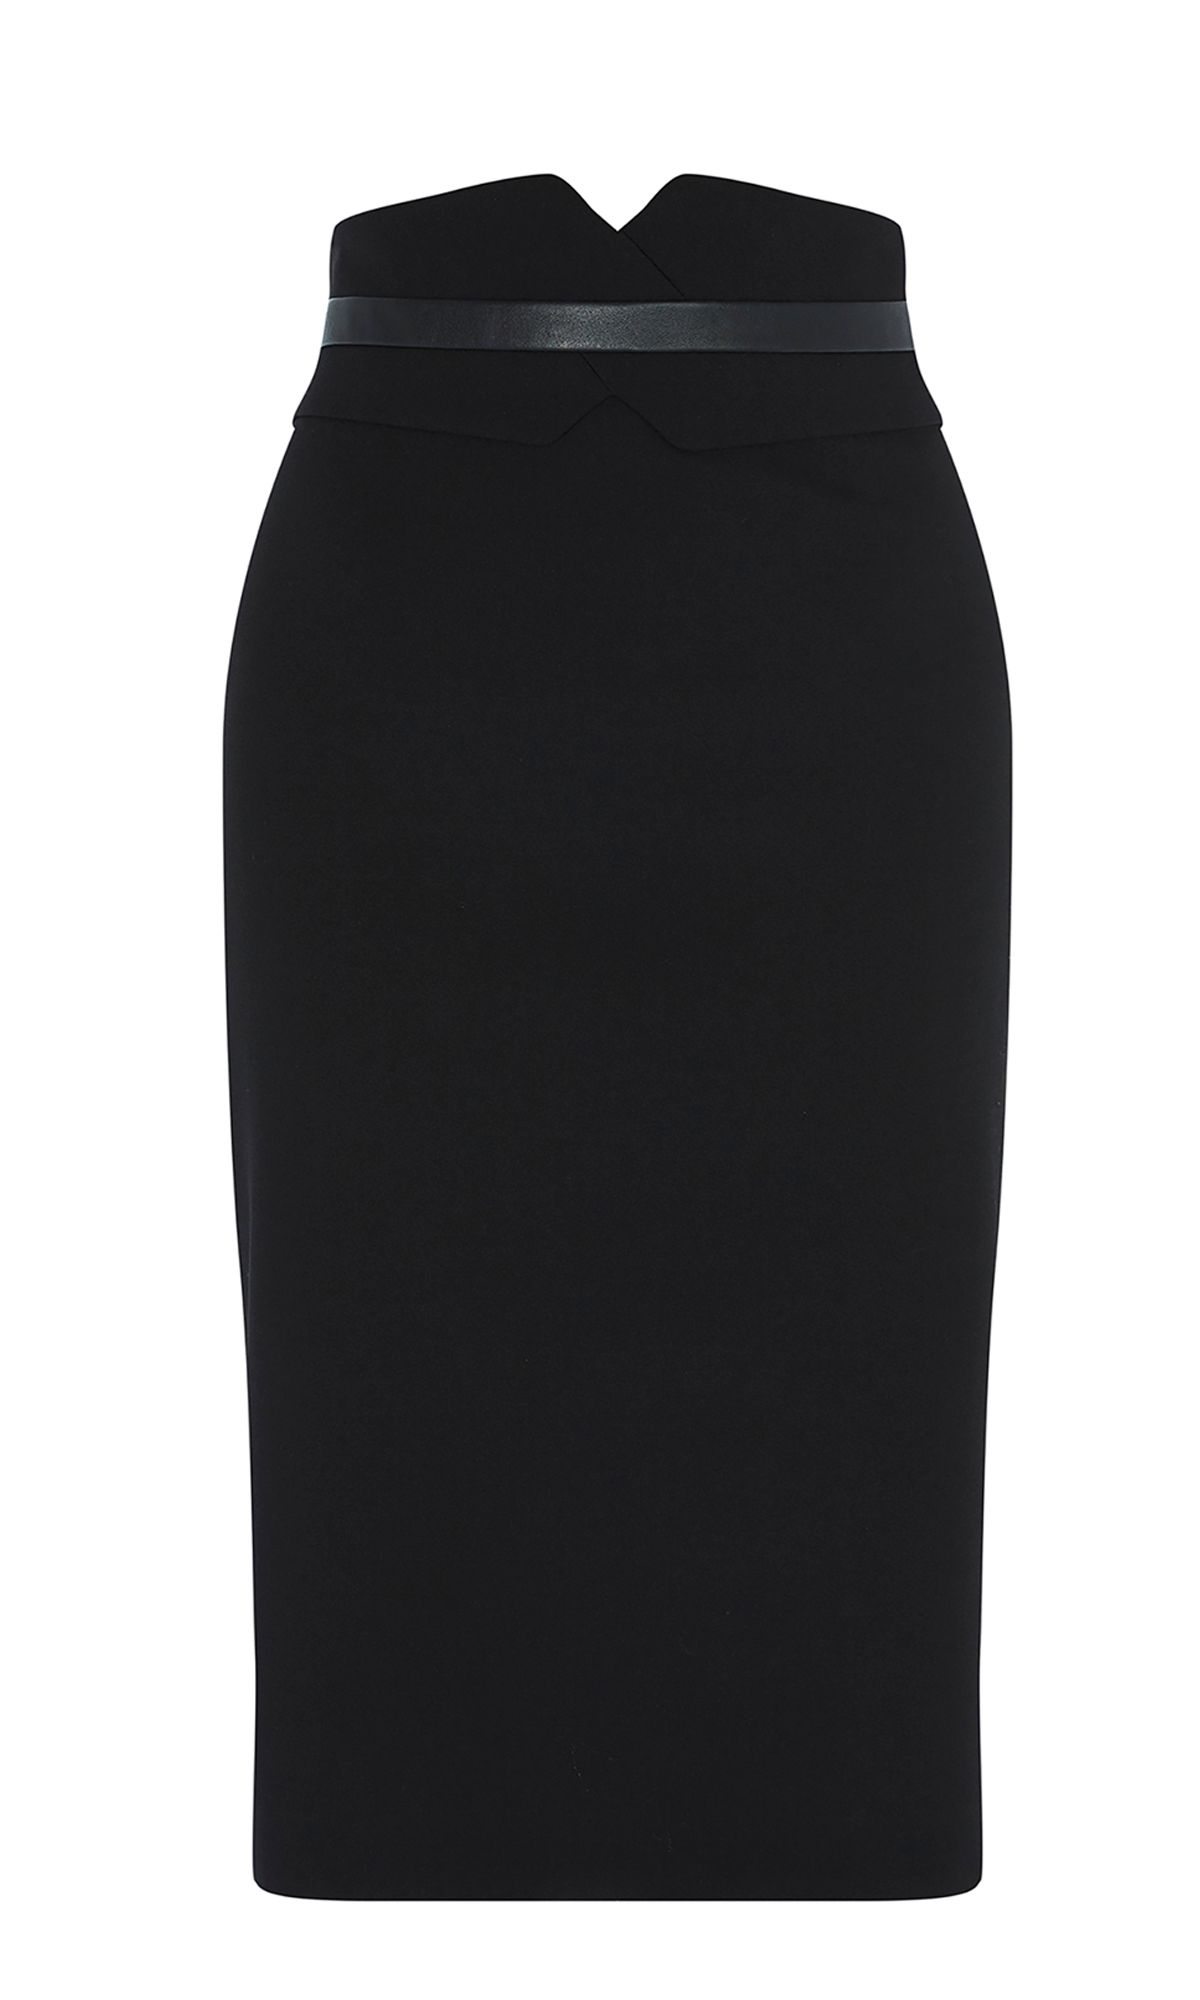 Karen Millen High-Waisted Pencil Skirt, Black